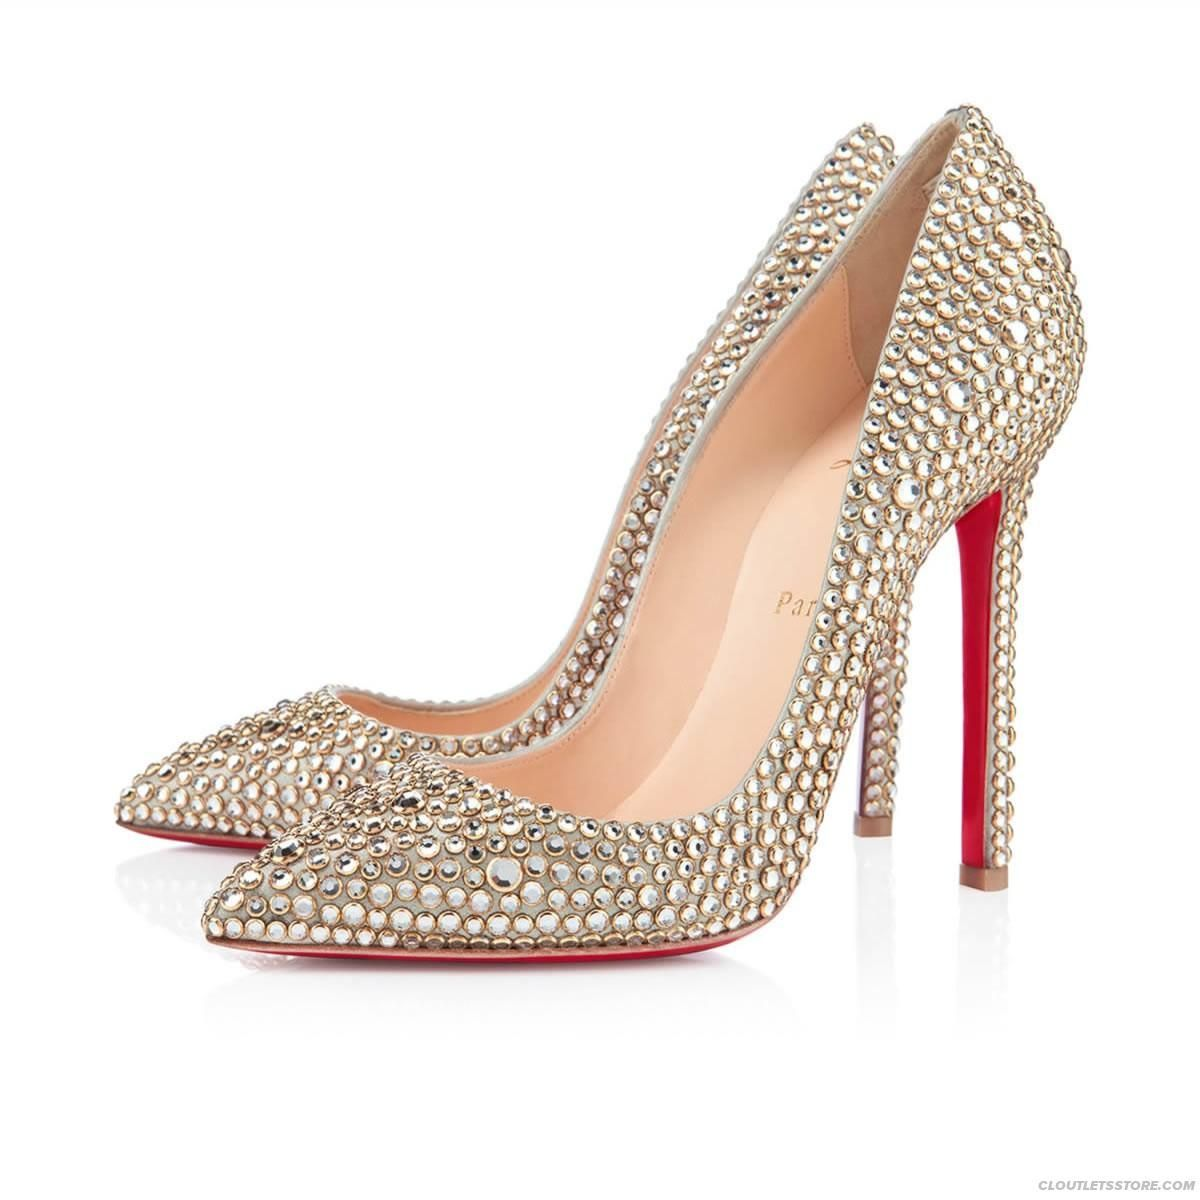 1965942c2048 I do not need Christian Louboutin Wedding Shoes. Or maybe I do... you only  get married once! (Lets hope)